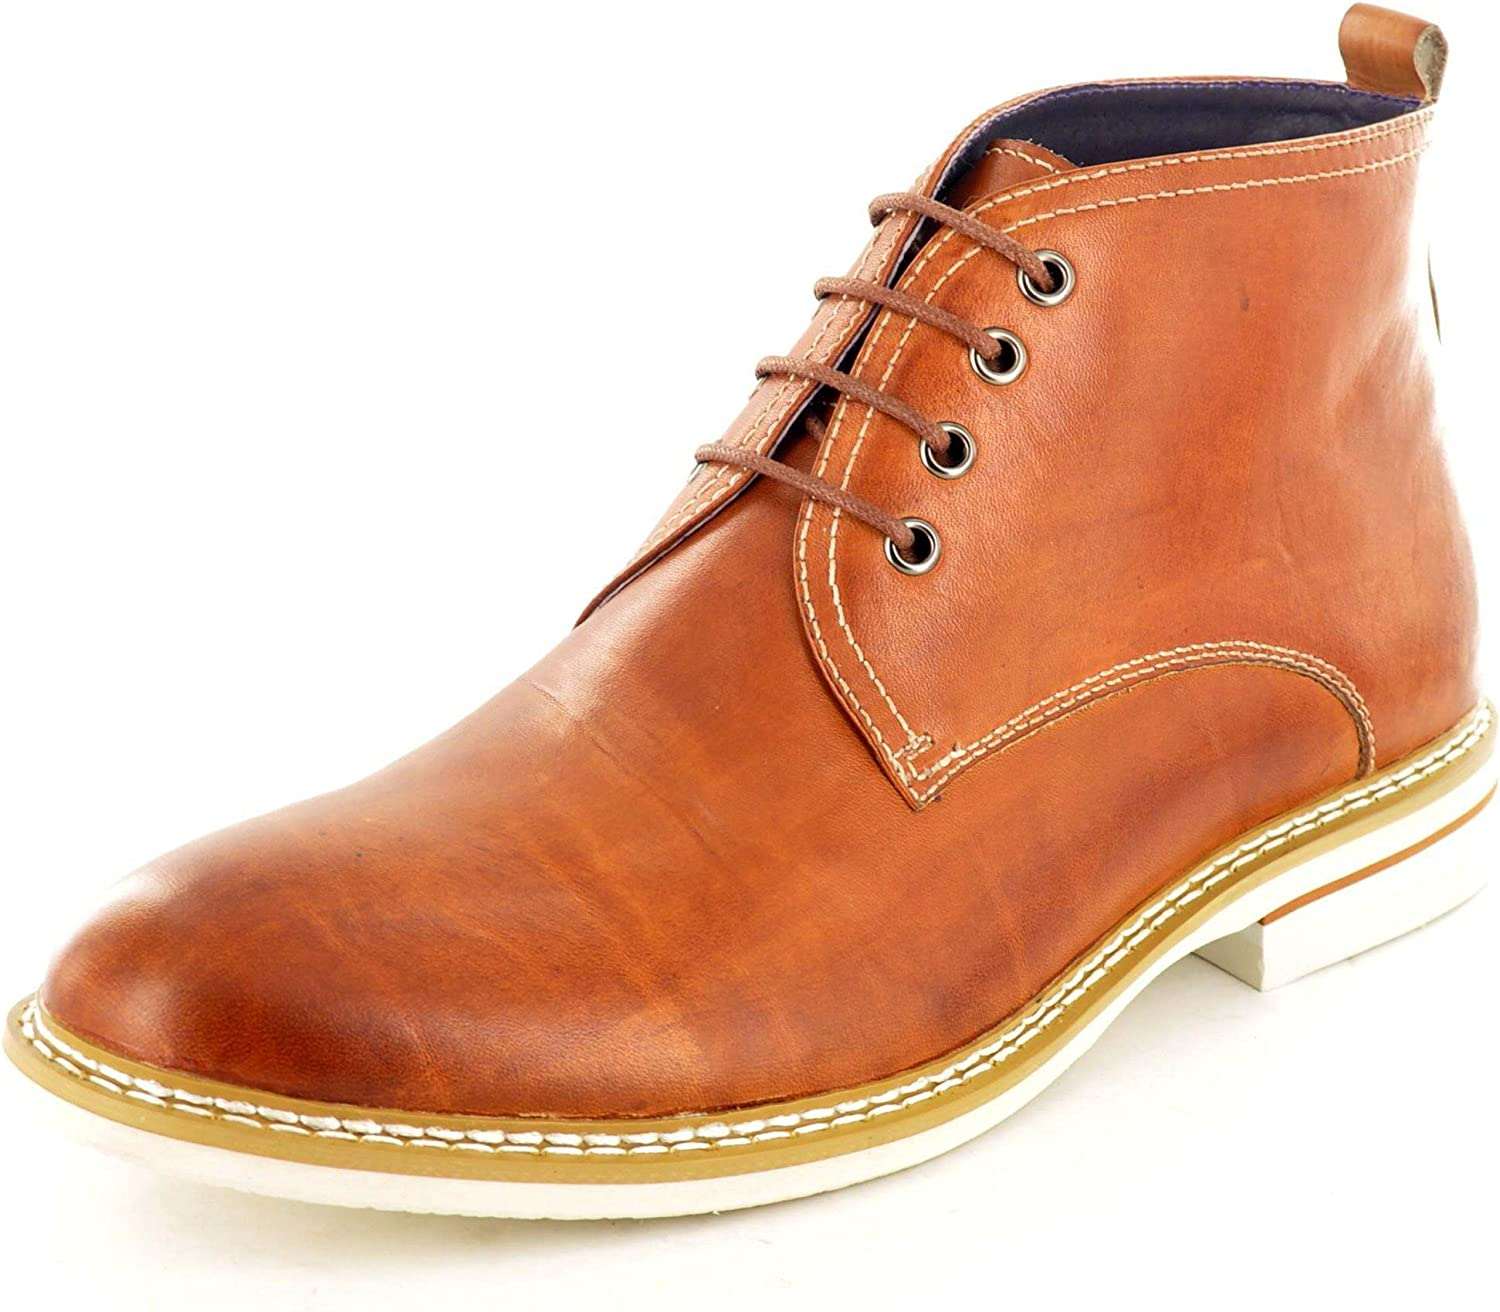 Size 10 Men's Jp1526 Gucinari Tan Lace Up Four Eyelet Mid Cut Leather Chukka Boots